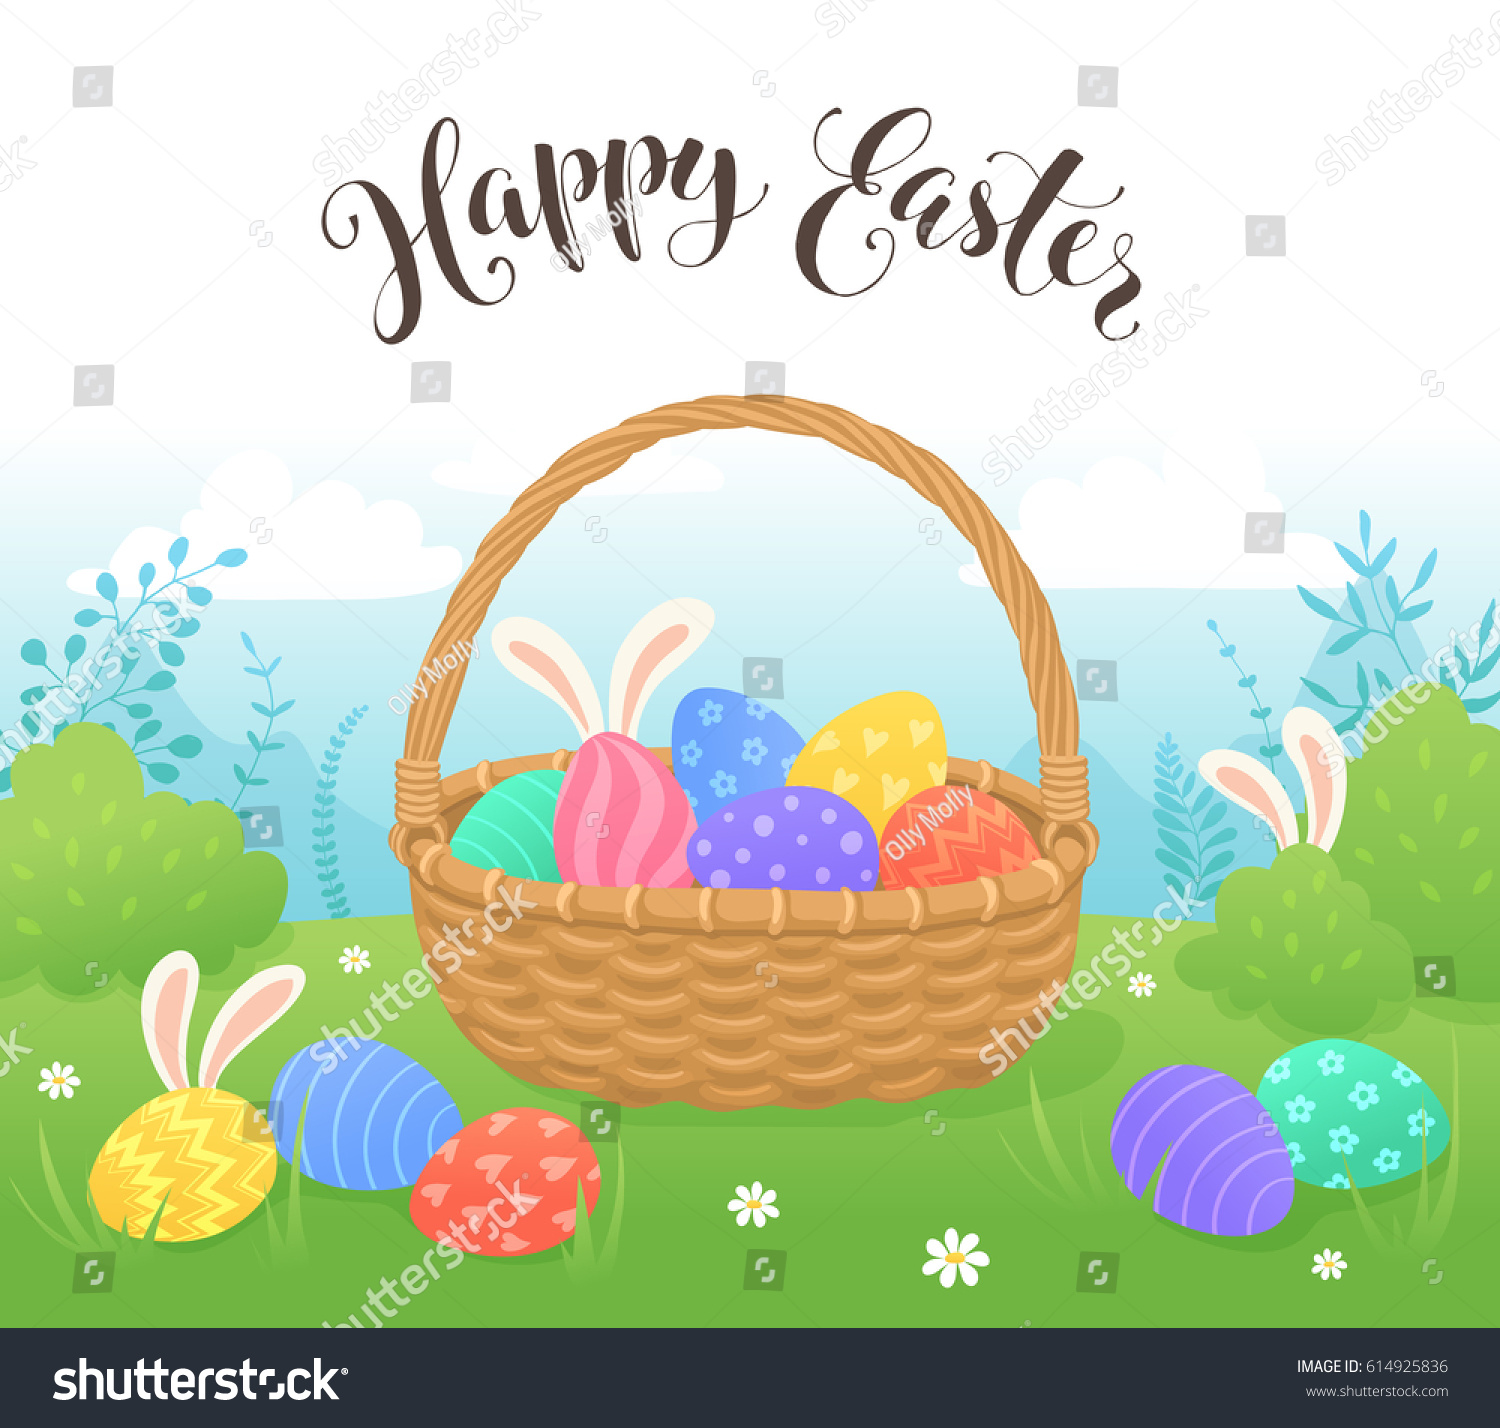 happy easter greeting card cartoon style stock vector 614925836